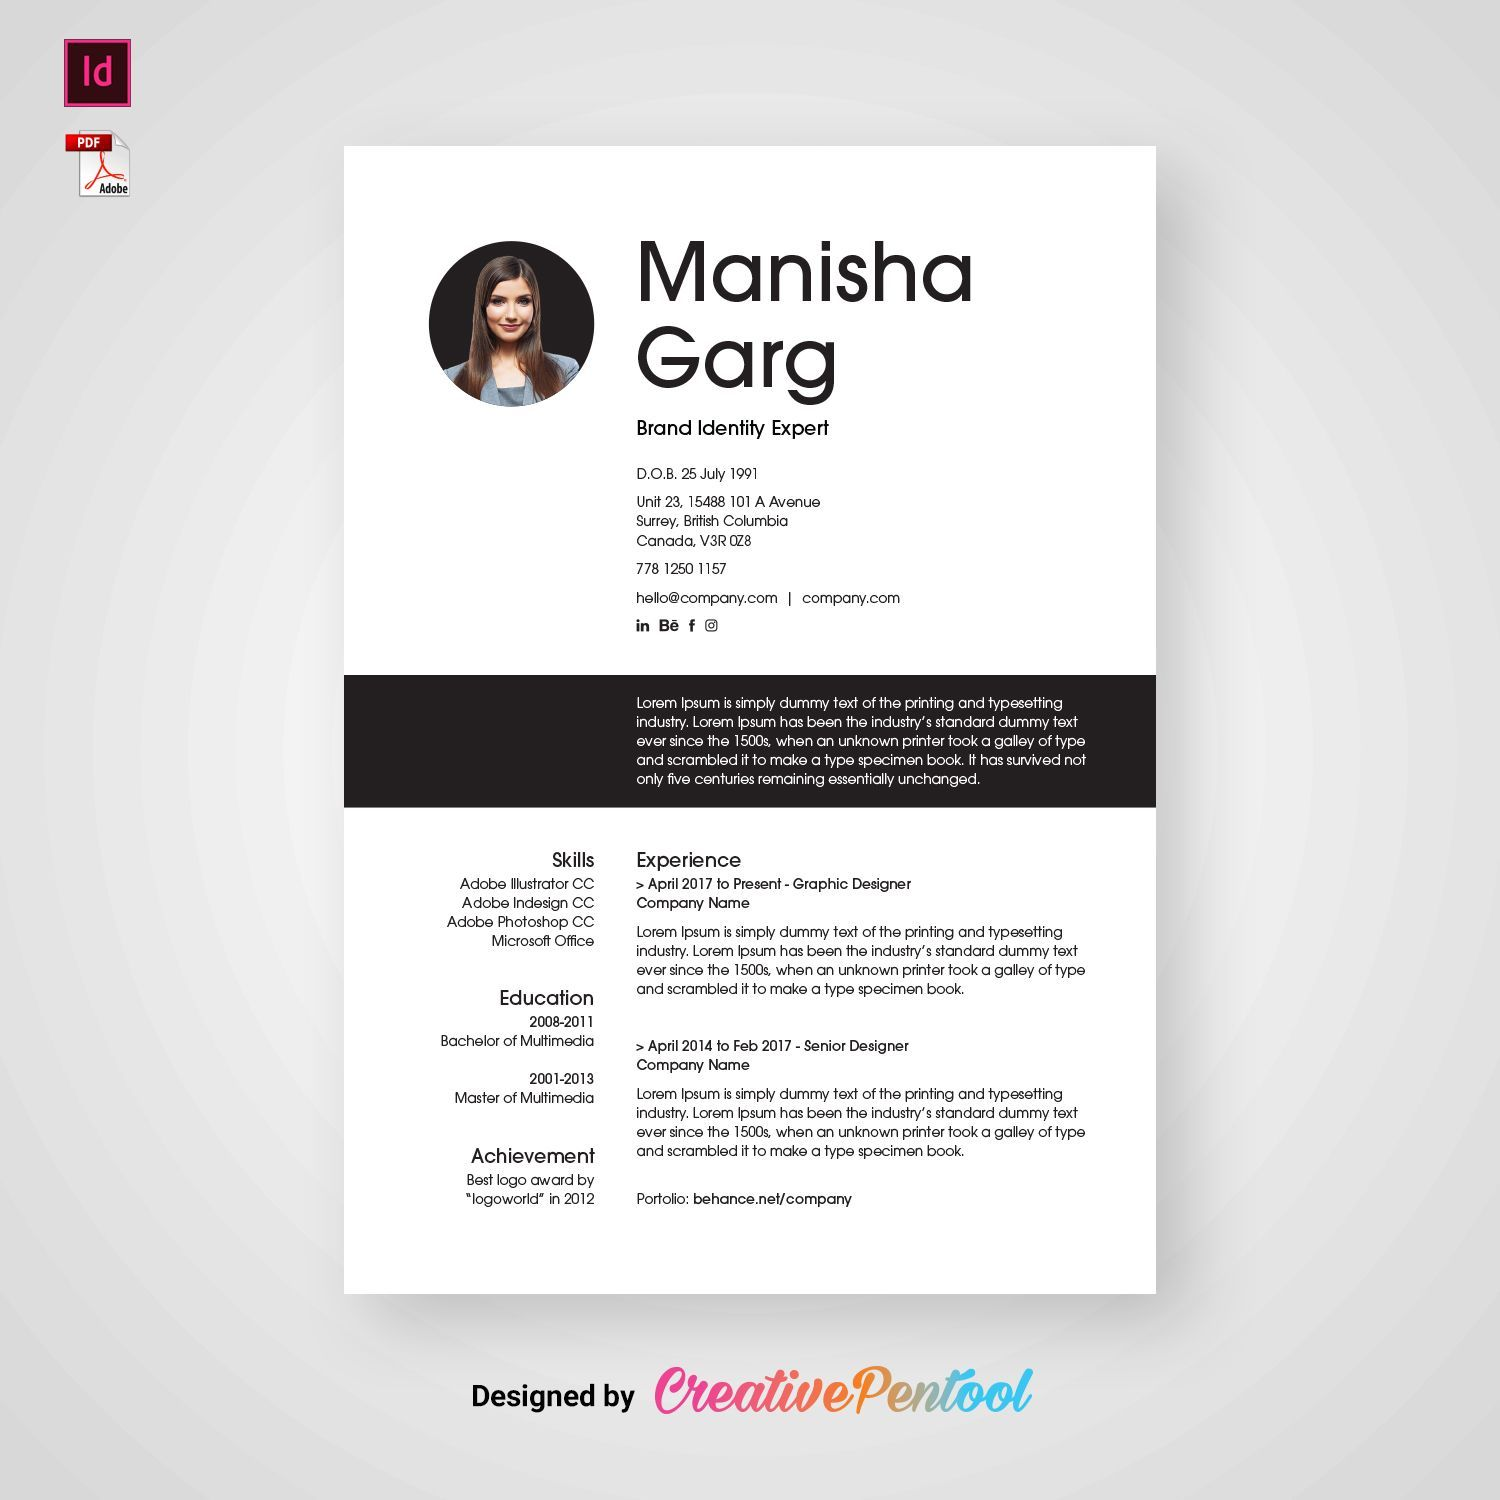 Download this template FREE. This professional resume